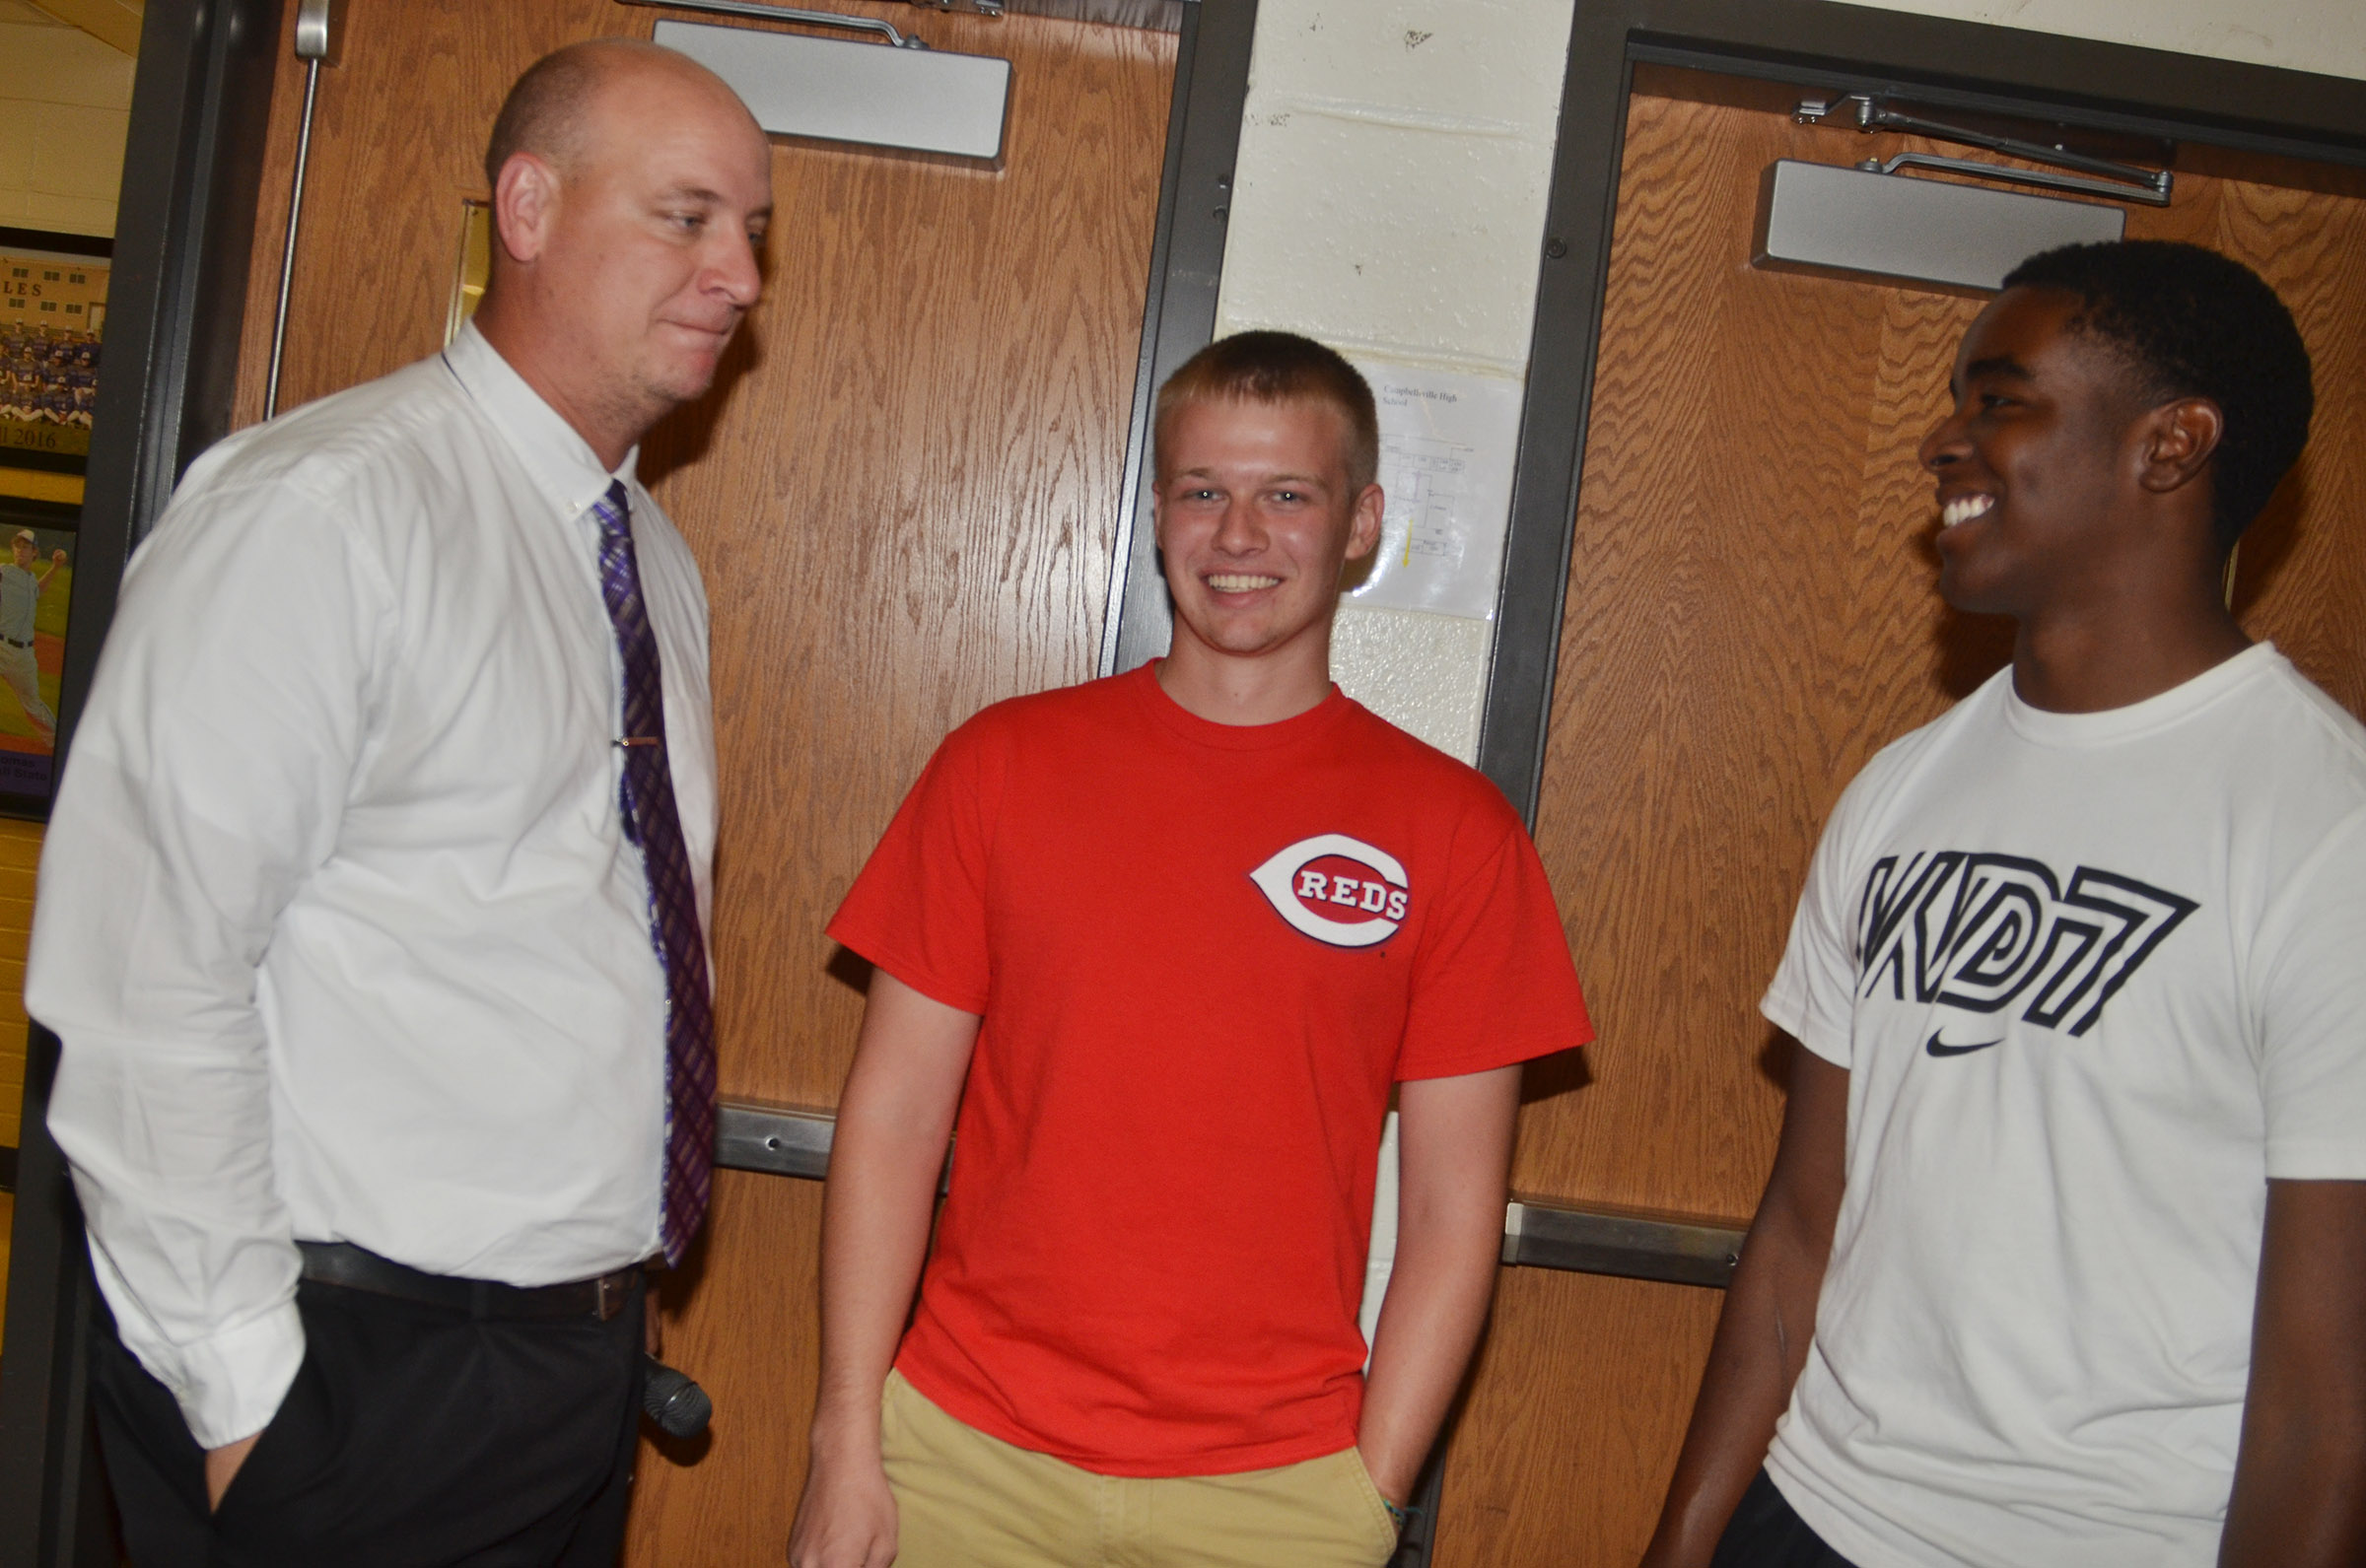 CHS Principal David Petett talks to CHS seniors Wyatt Houk, center, and Chanson Atkinson.